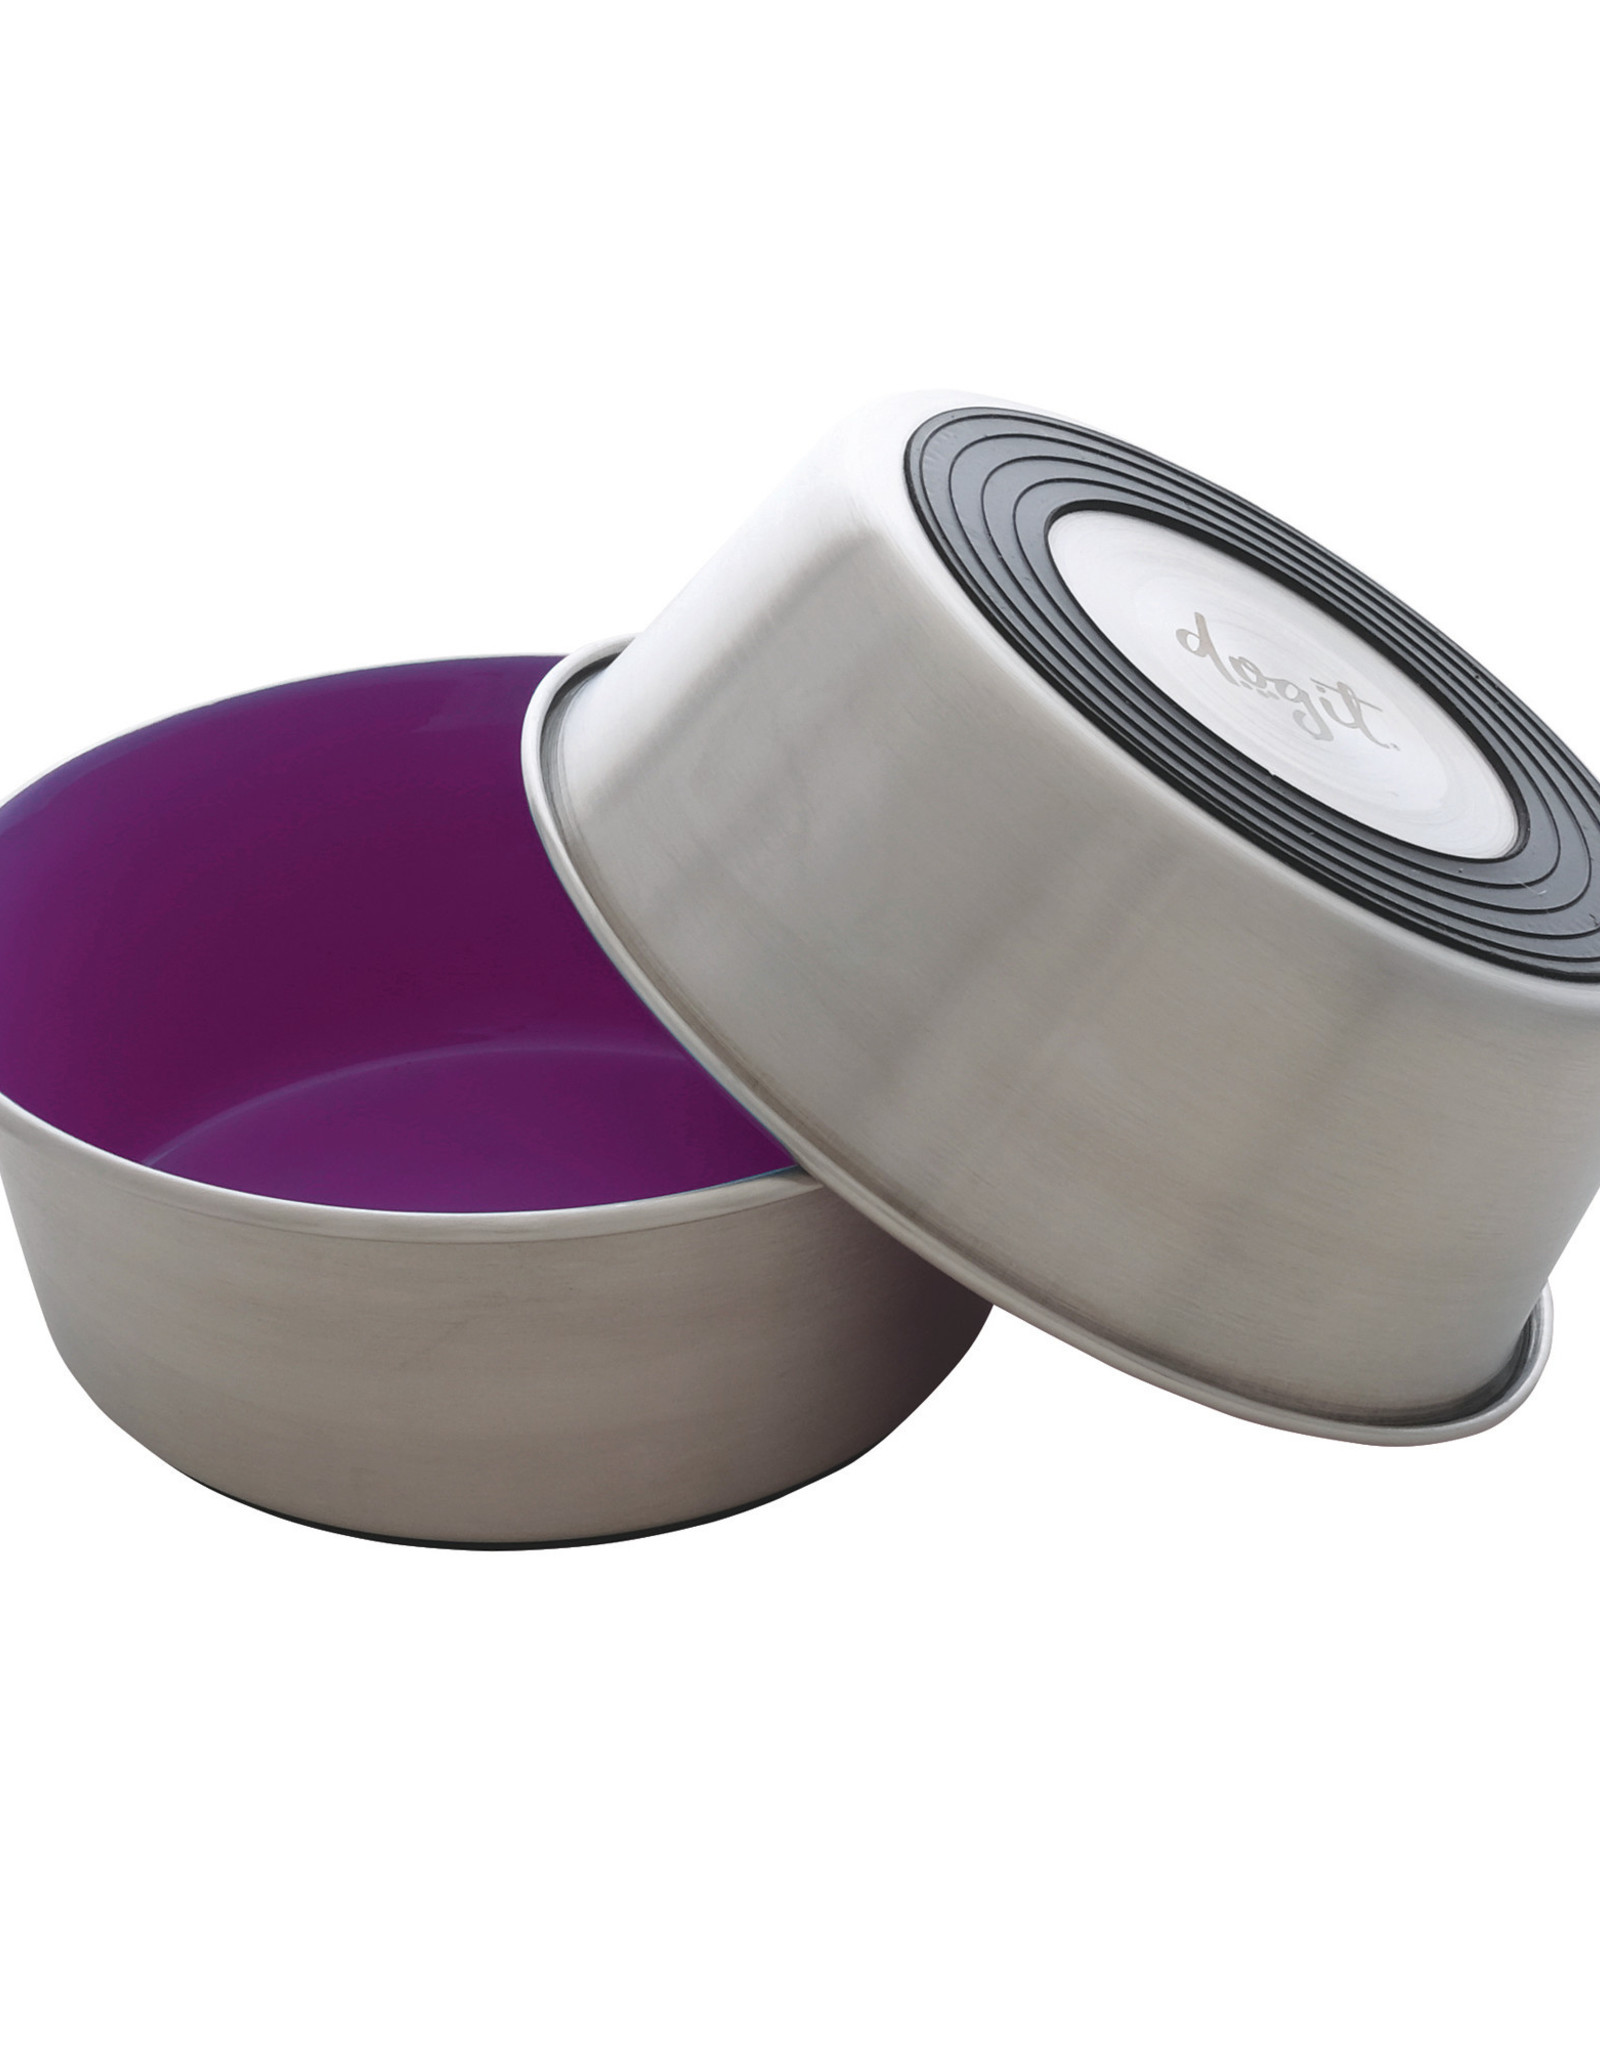 DogIt Dogit Stainless Steel Non-Skid Dog Bowl - Purple